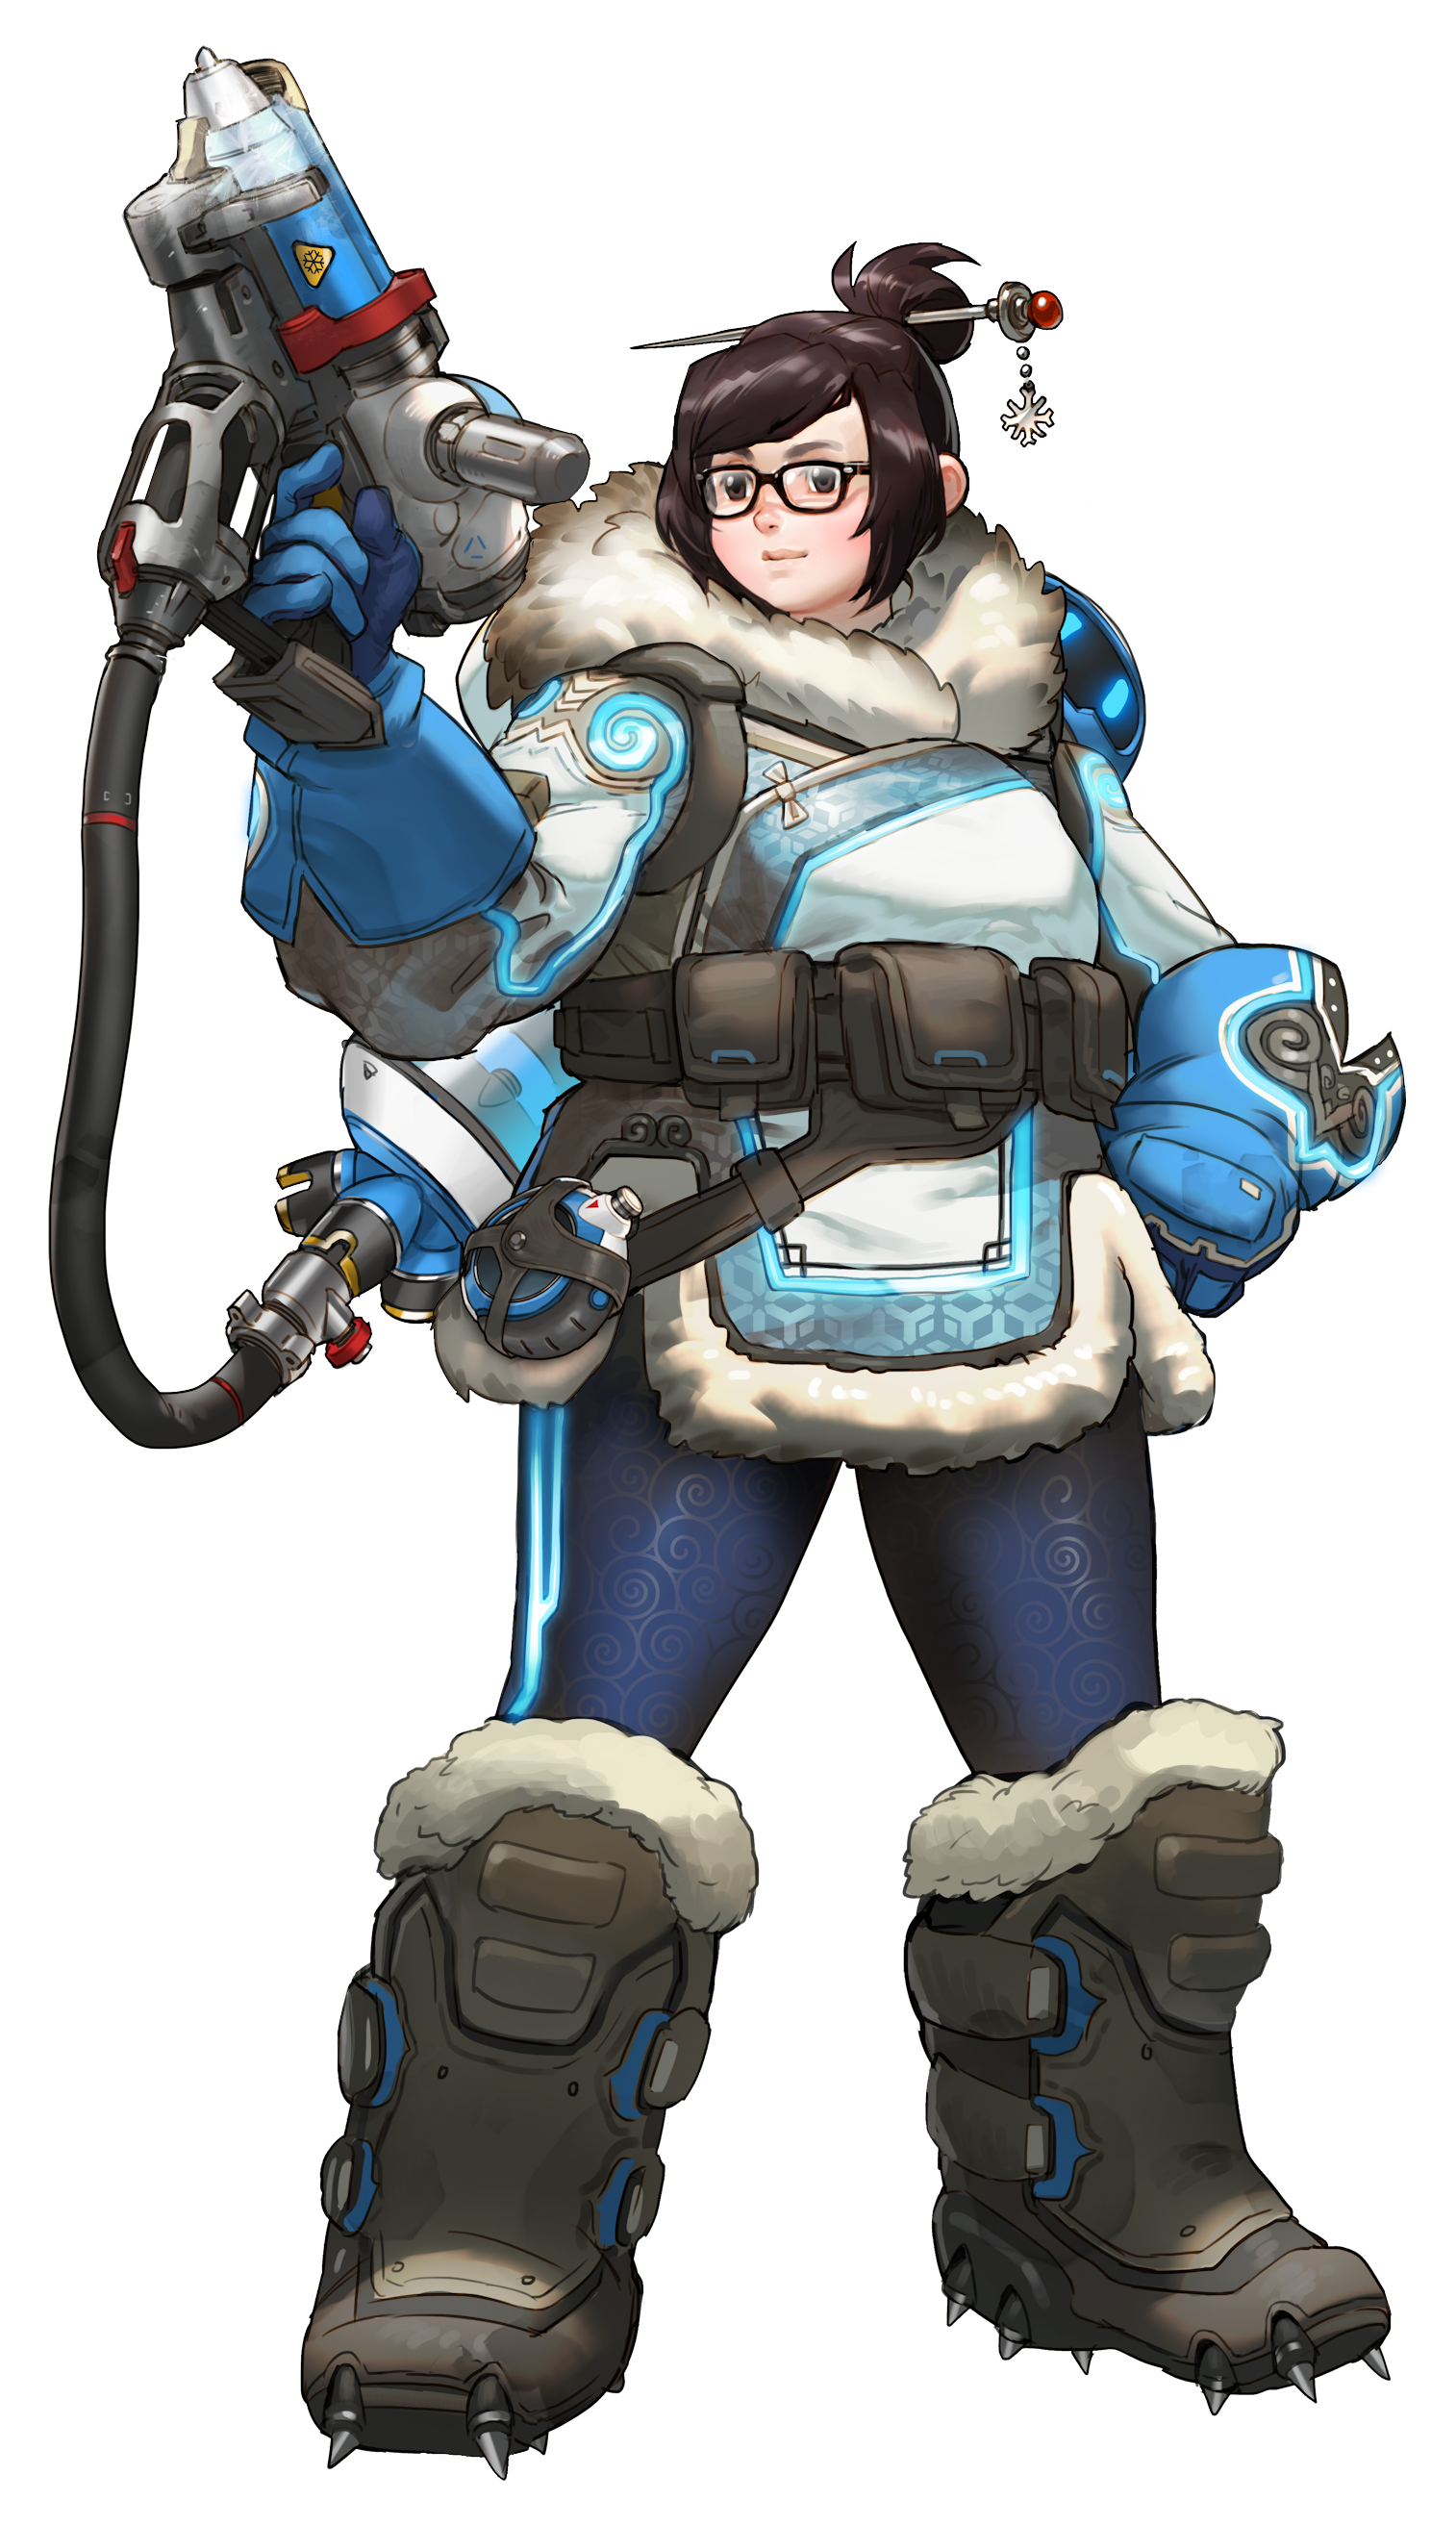 Overwatch characters png. Image mei official game